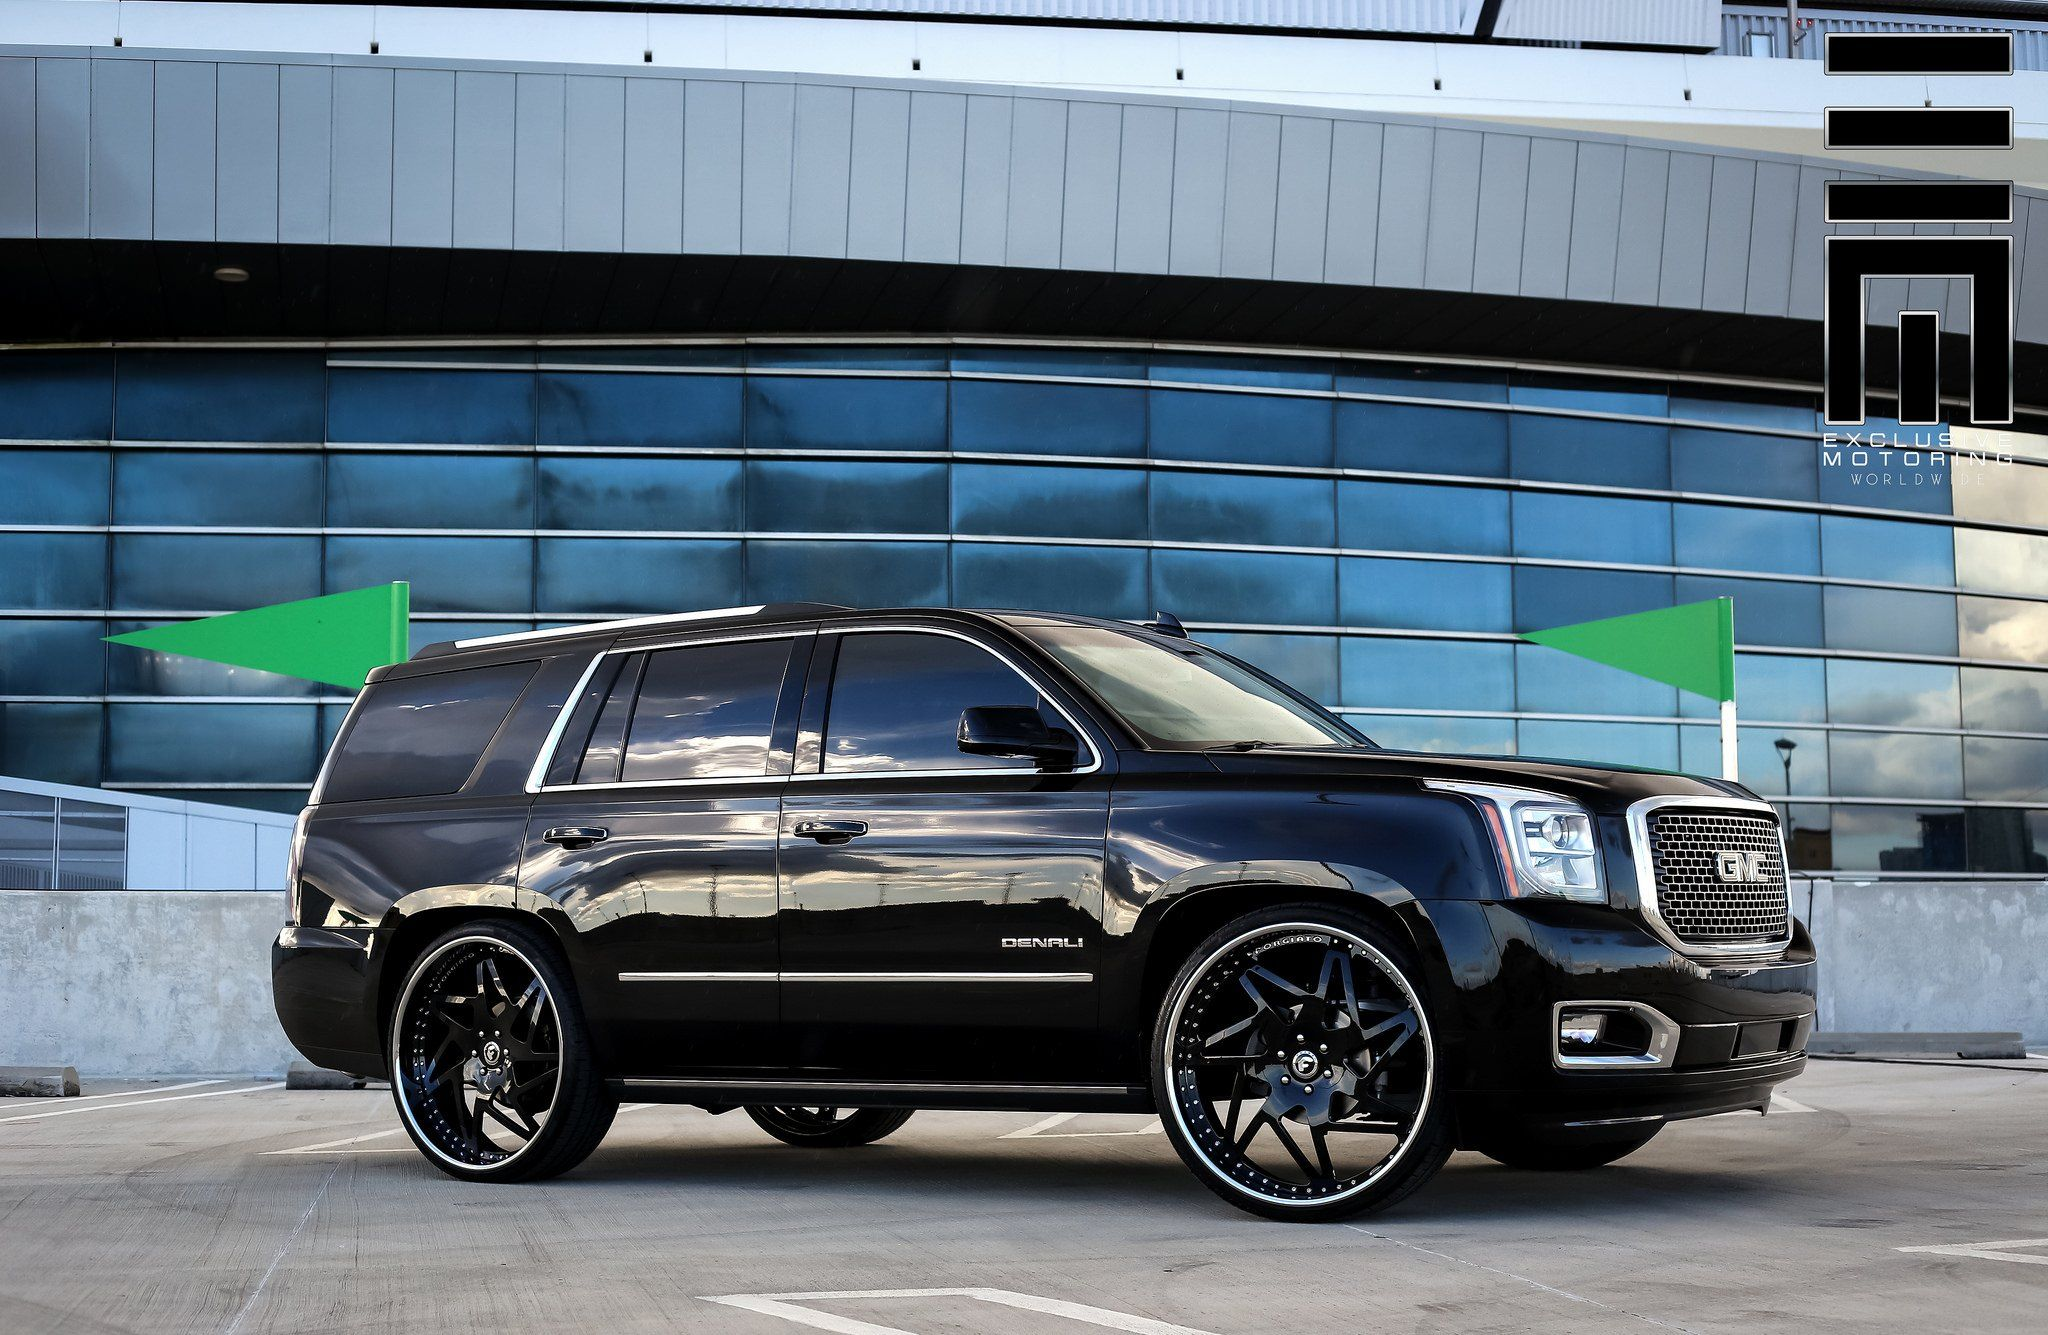 Gmc Yukon Denali On 26 Inch Rims Photo By Exclusive Motoring Yukon Denali Yukon Gmc Yukon